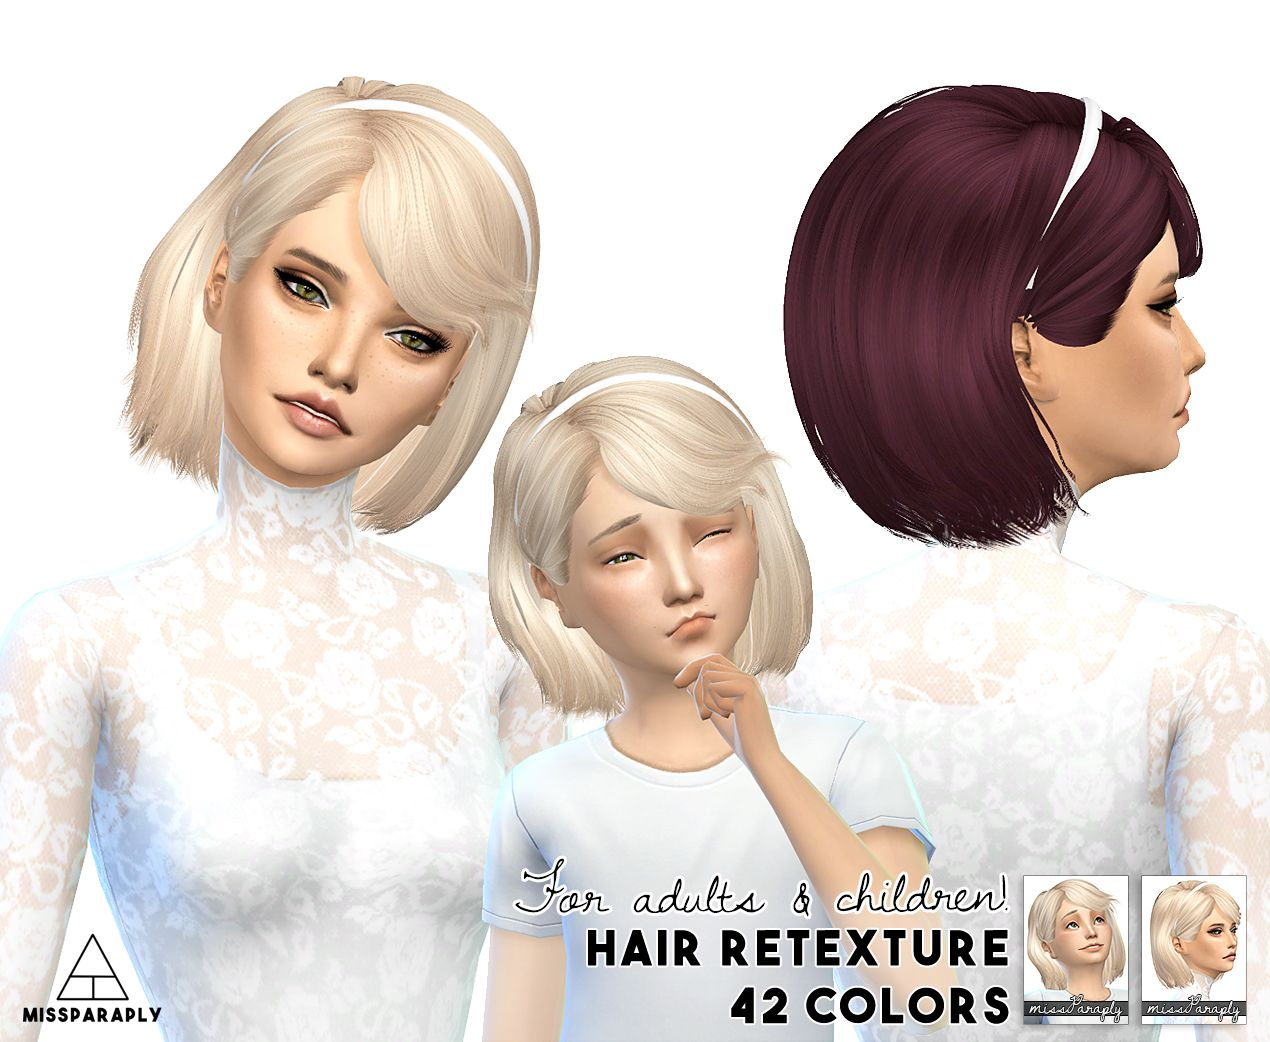 The sims 4 hairstyles cc - Miss Paraply Maysims 46 Hairstyle Retextured Sims 4 Hairs Http